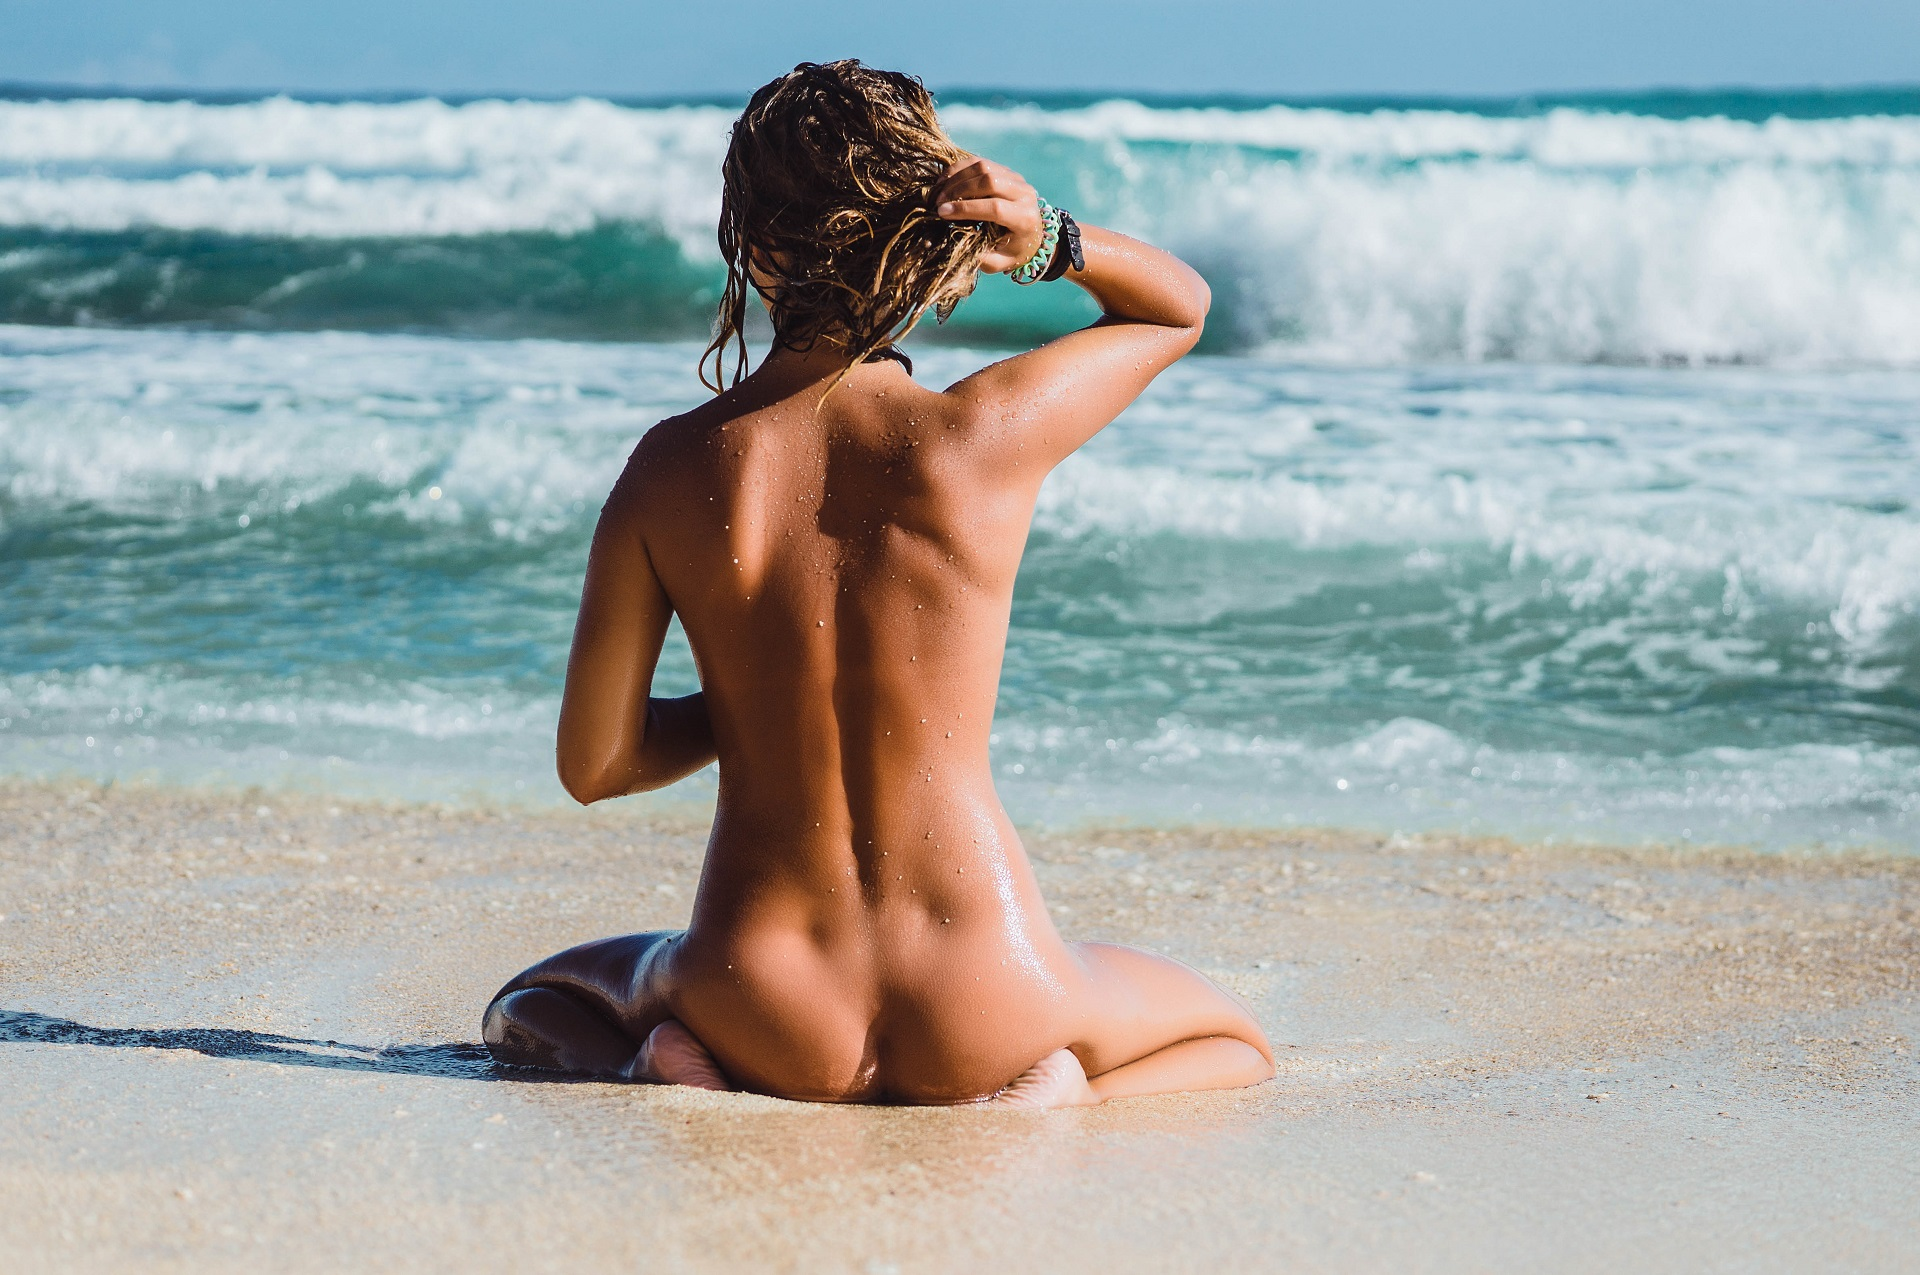 Laws of nude beaches